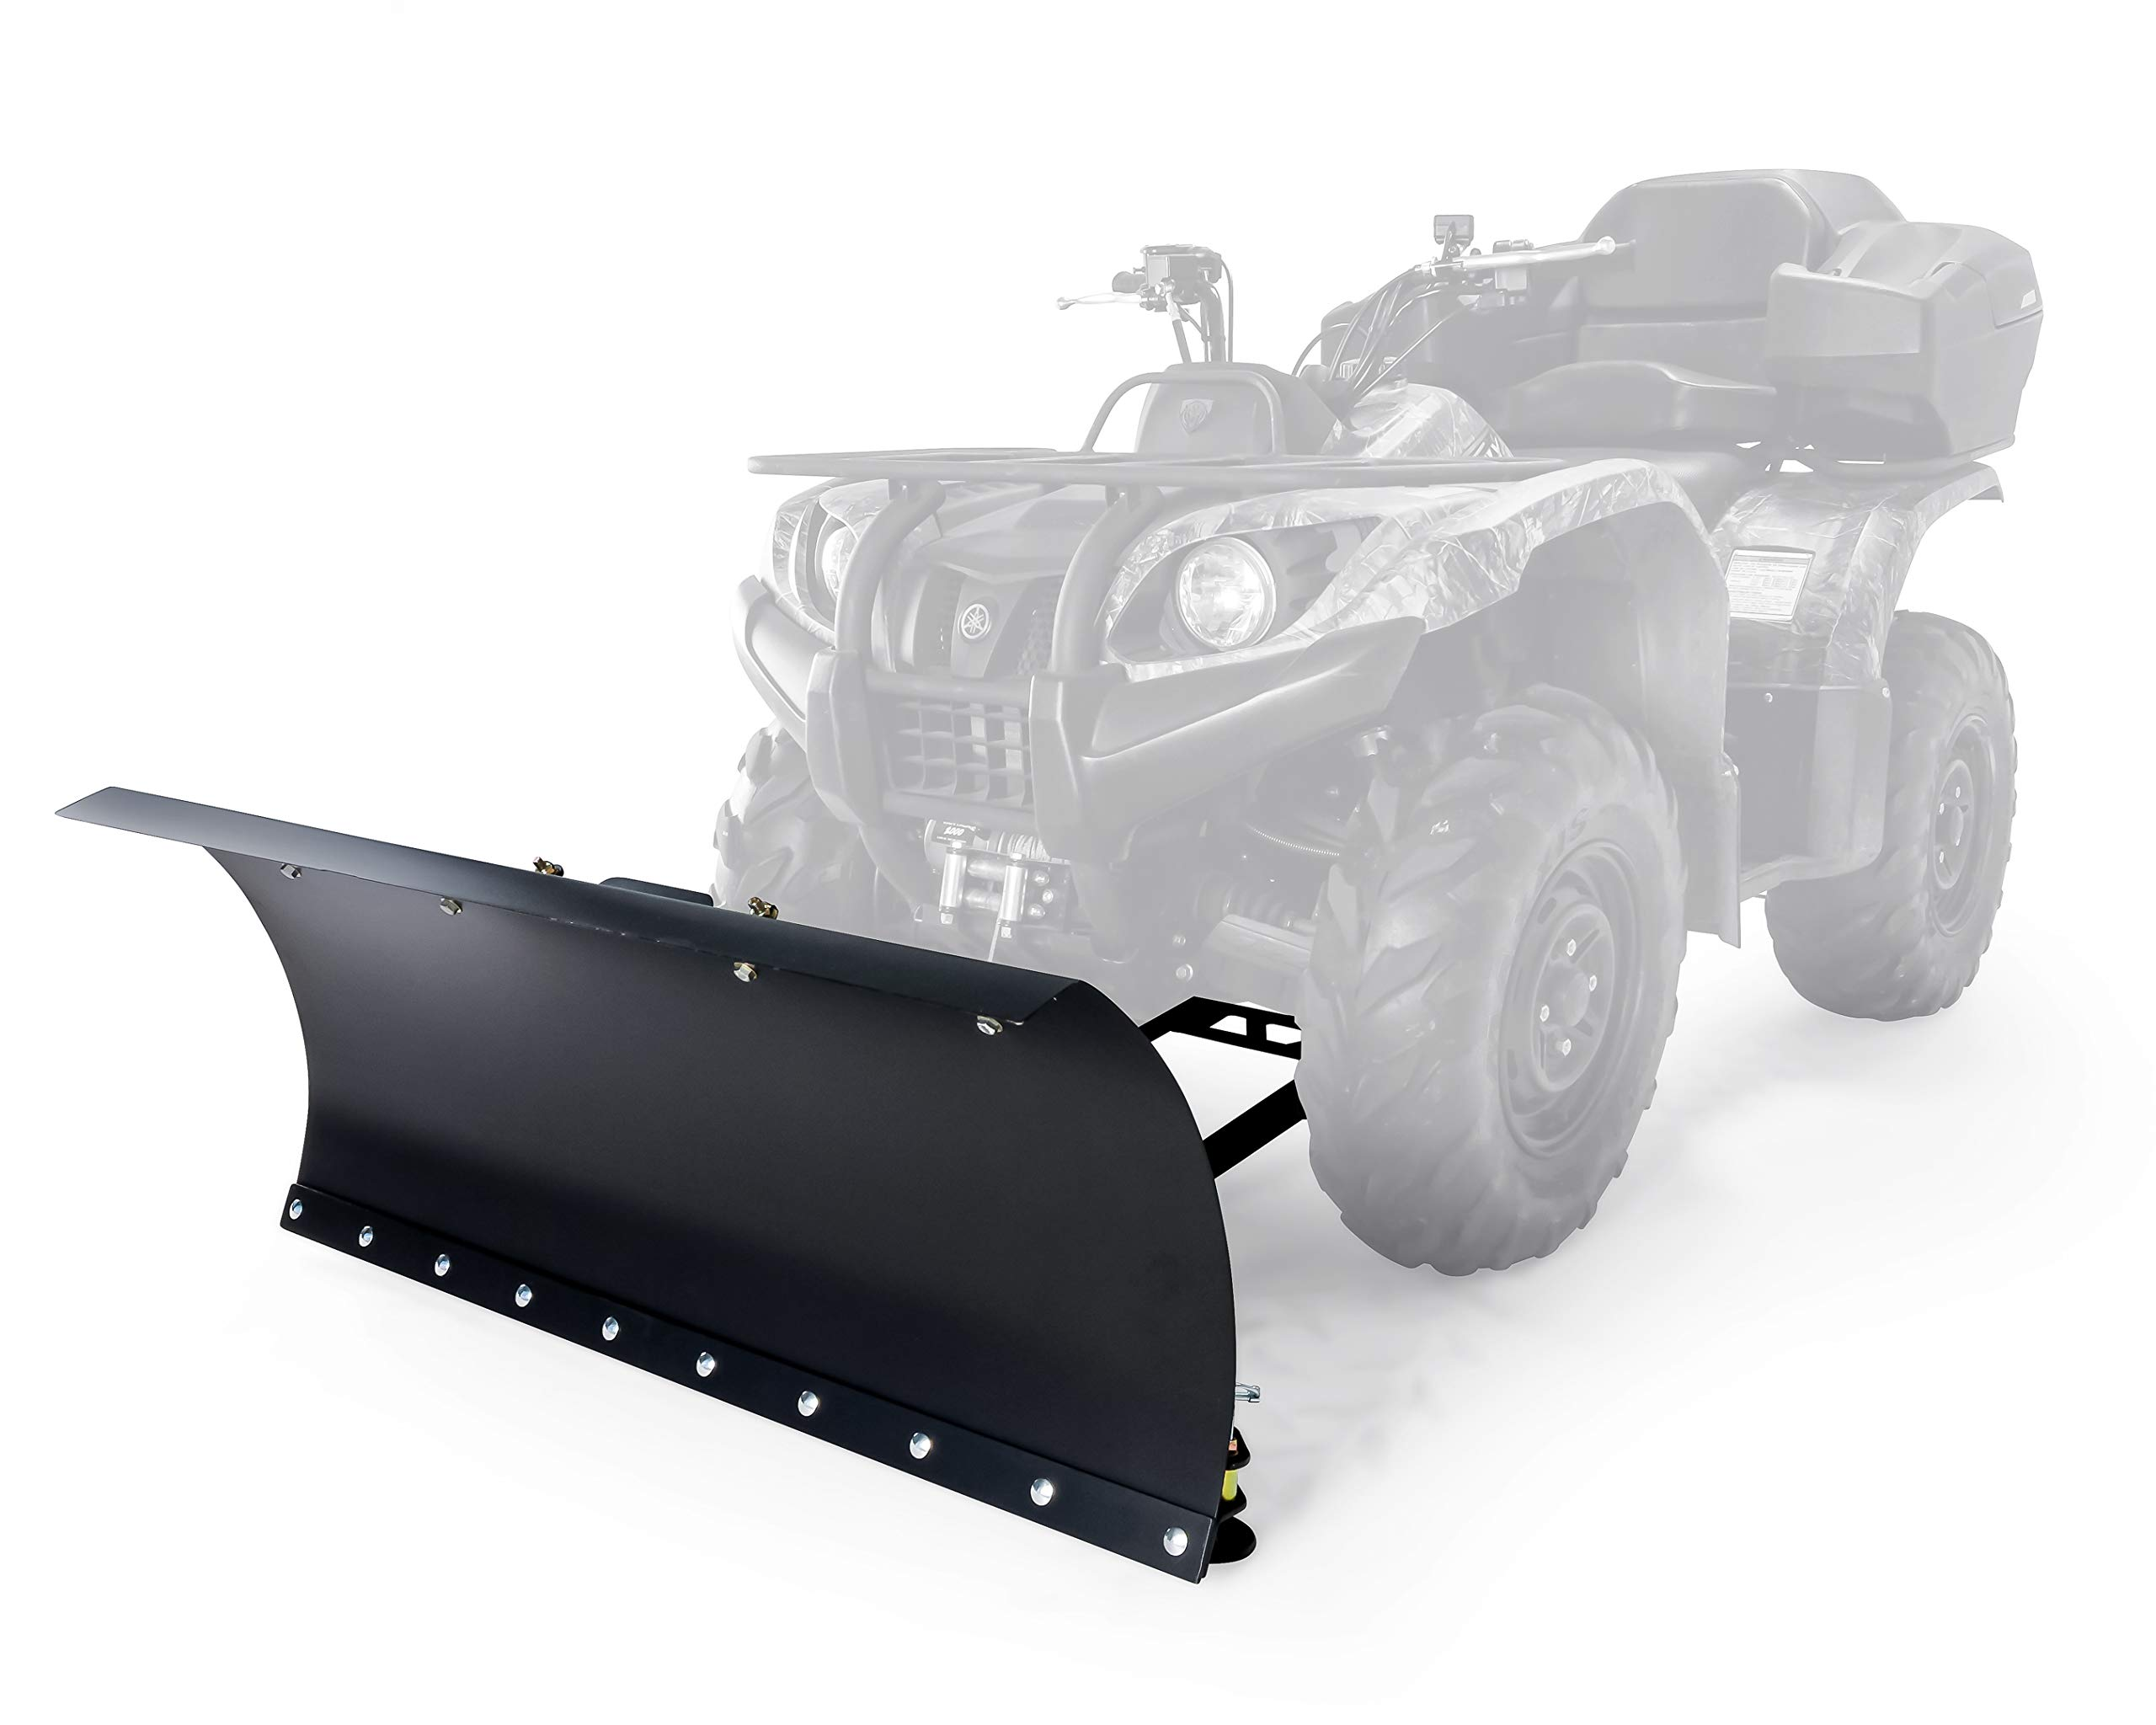 Black Boar ATV Snow Plow Kit-48 with 9-Position Blade Angle, Adjusts to 30 Degrees to Each Side (66016